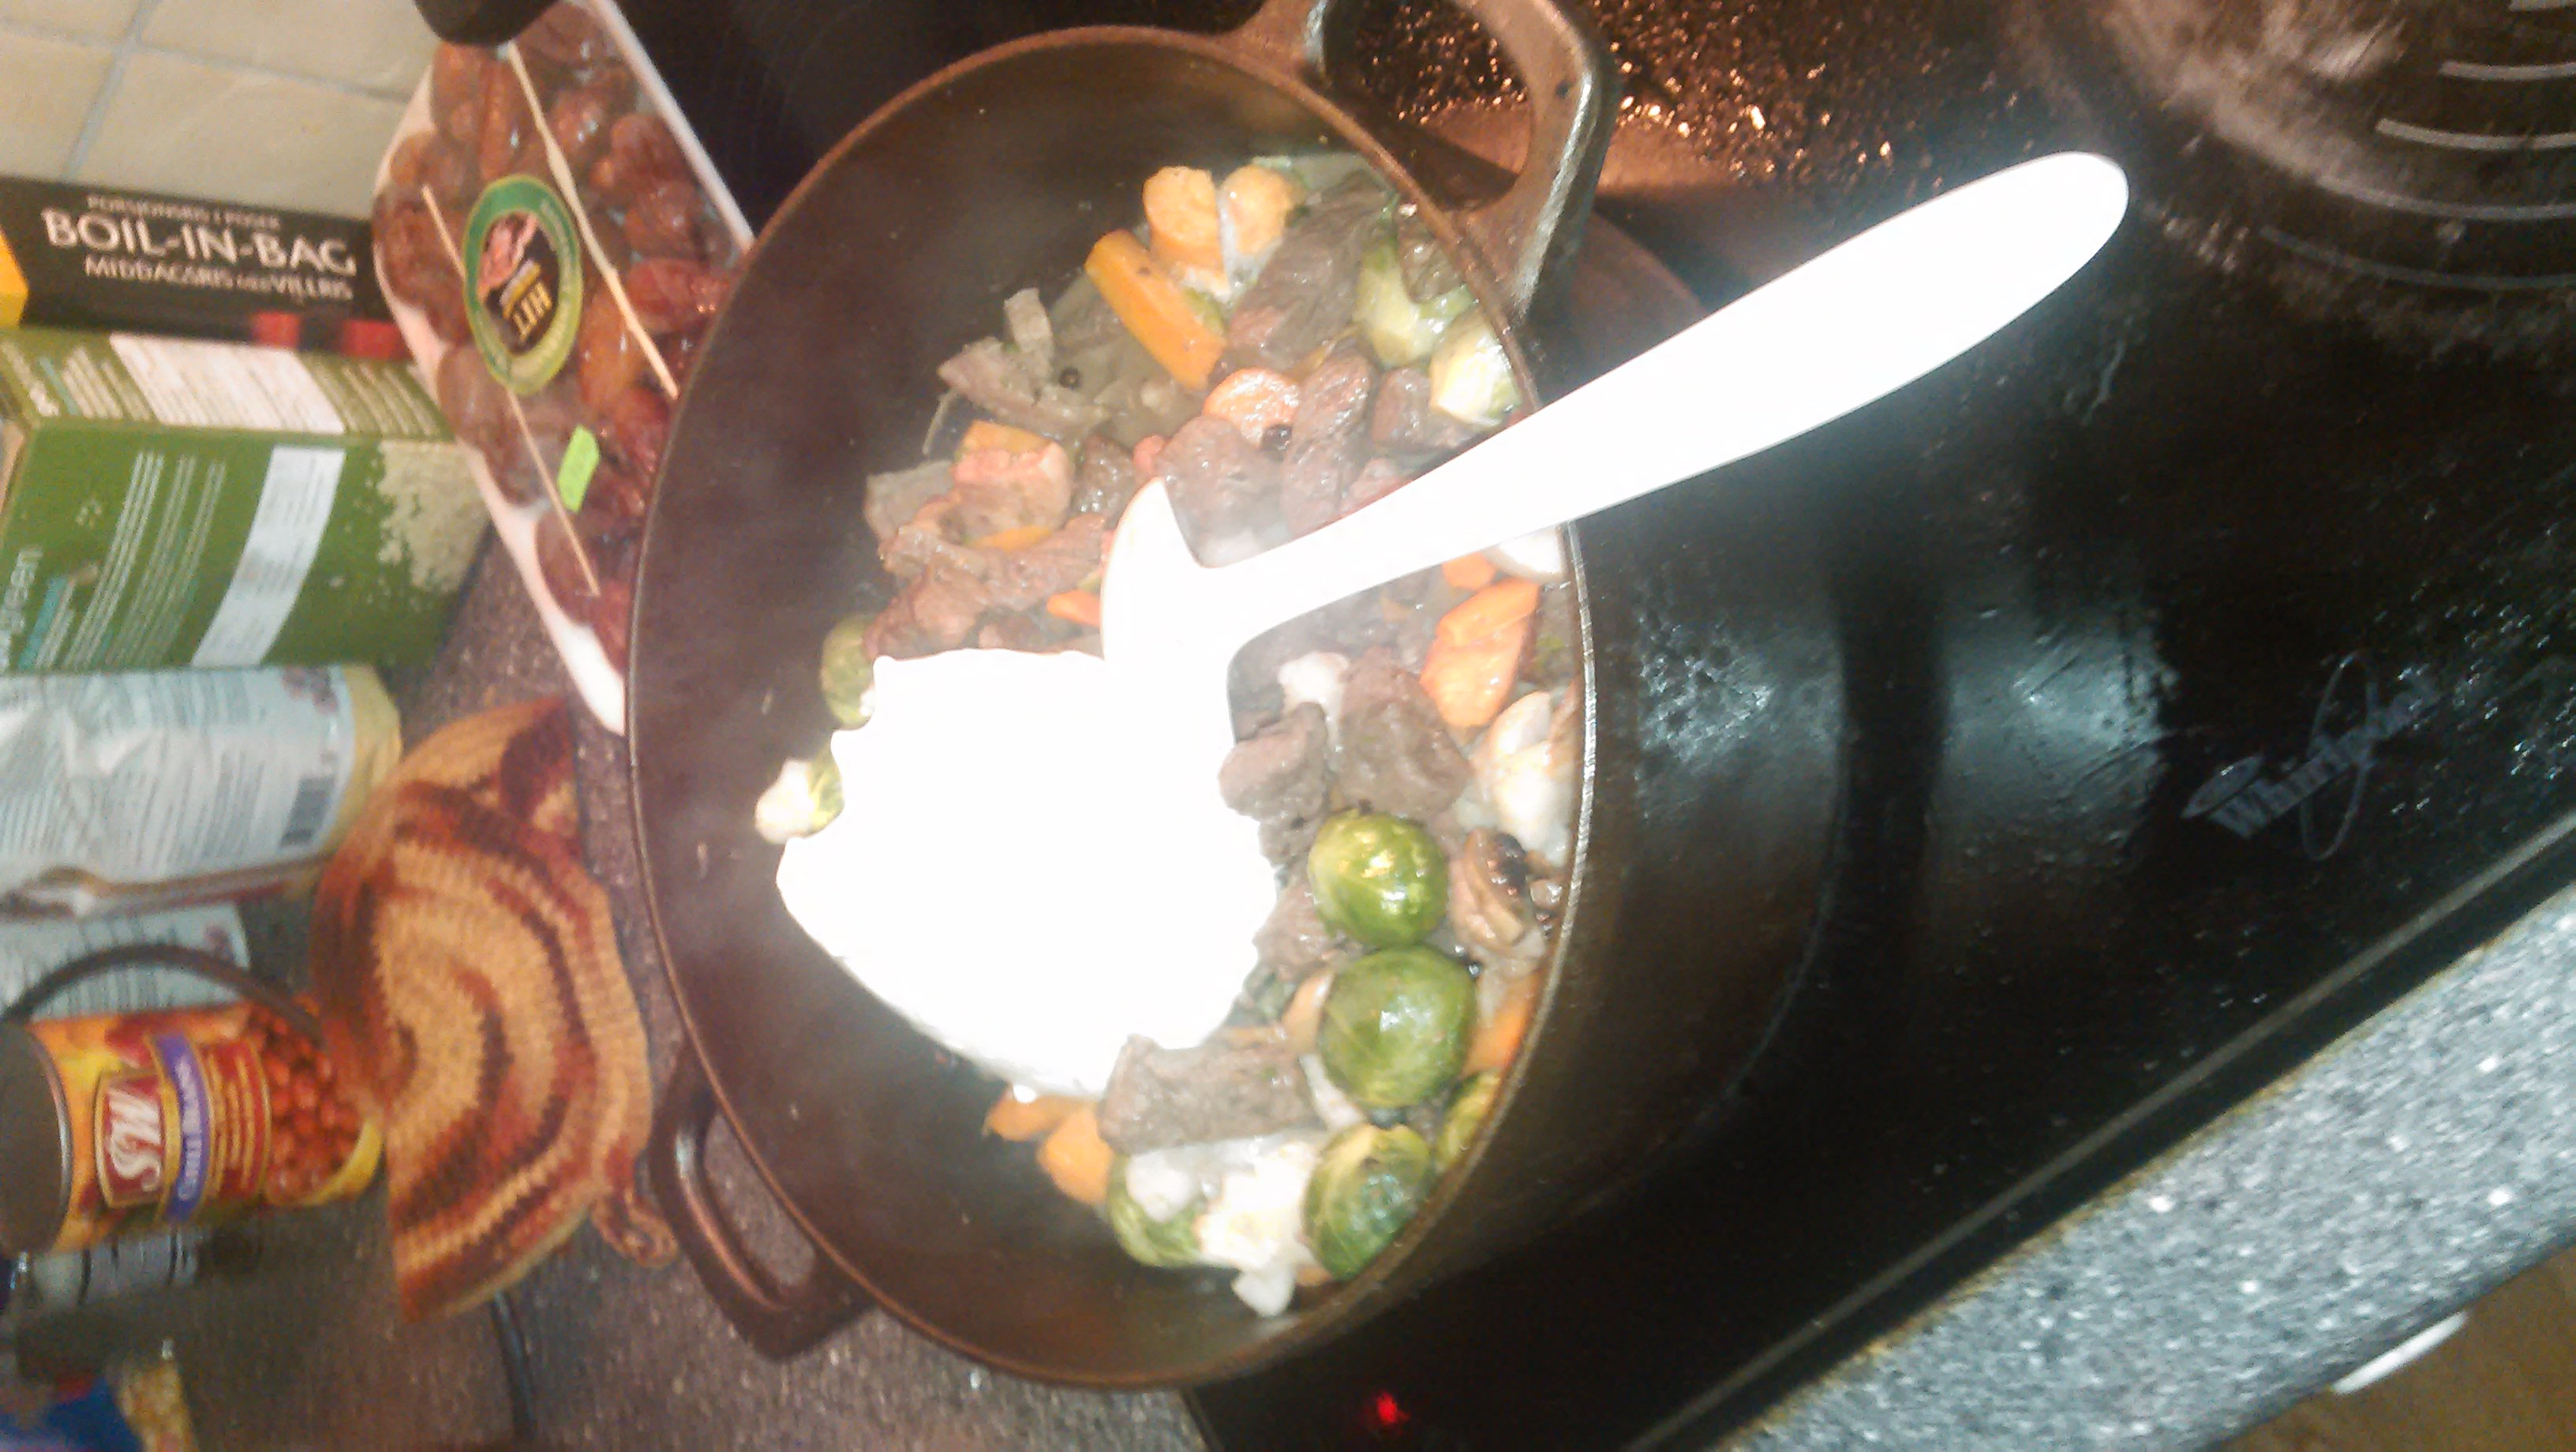 Baconwhalestew